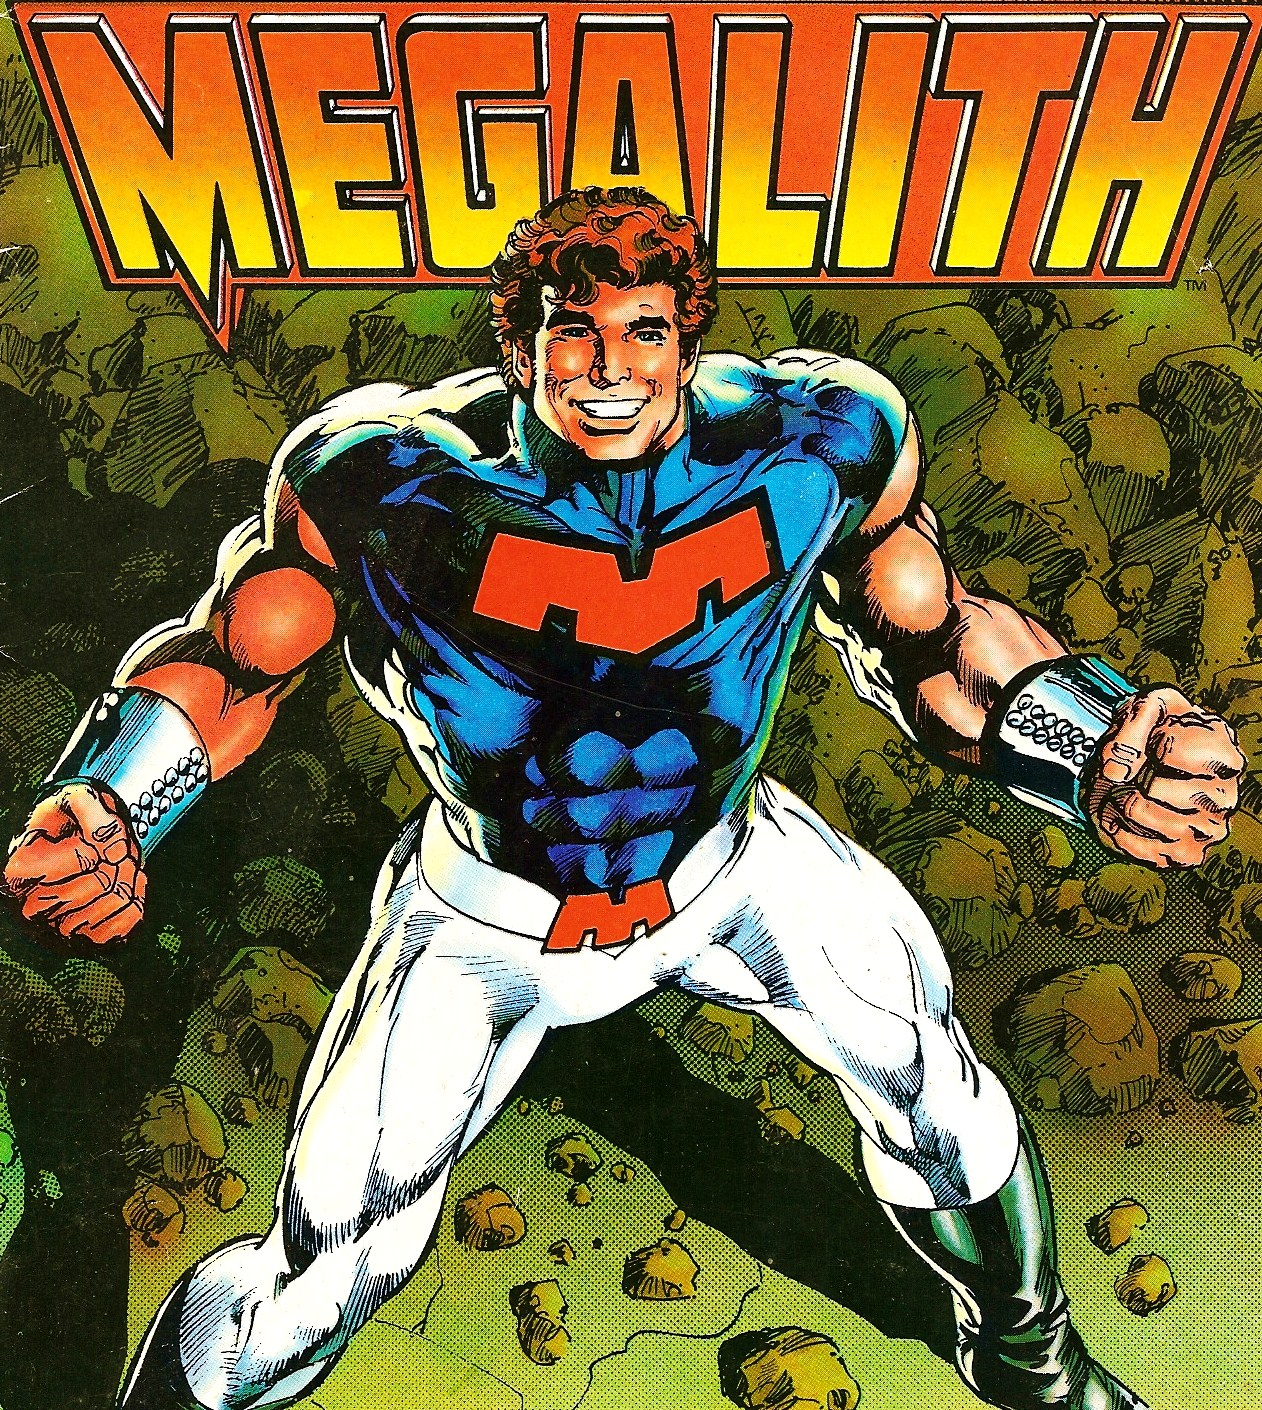 Megalith is the second best character that Neal Adams has ever created, falling slightly behind Skate-Man for the top slot....